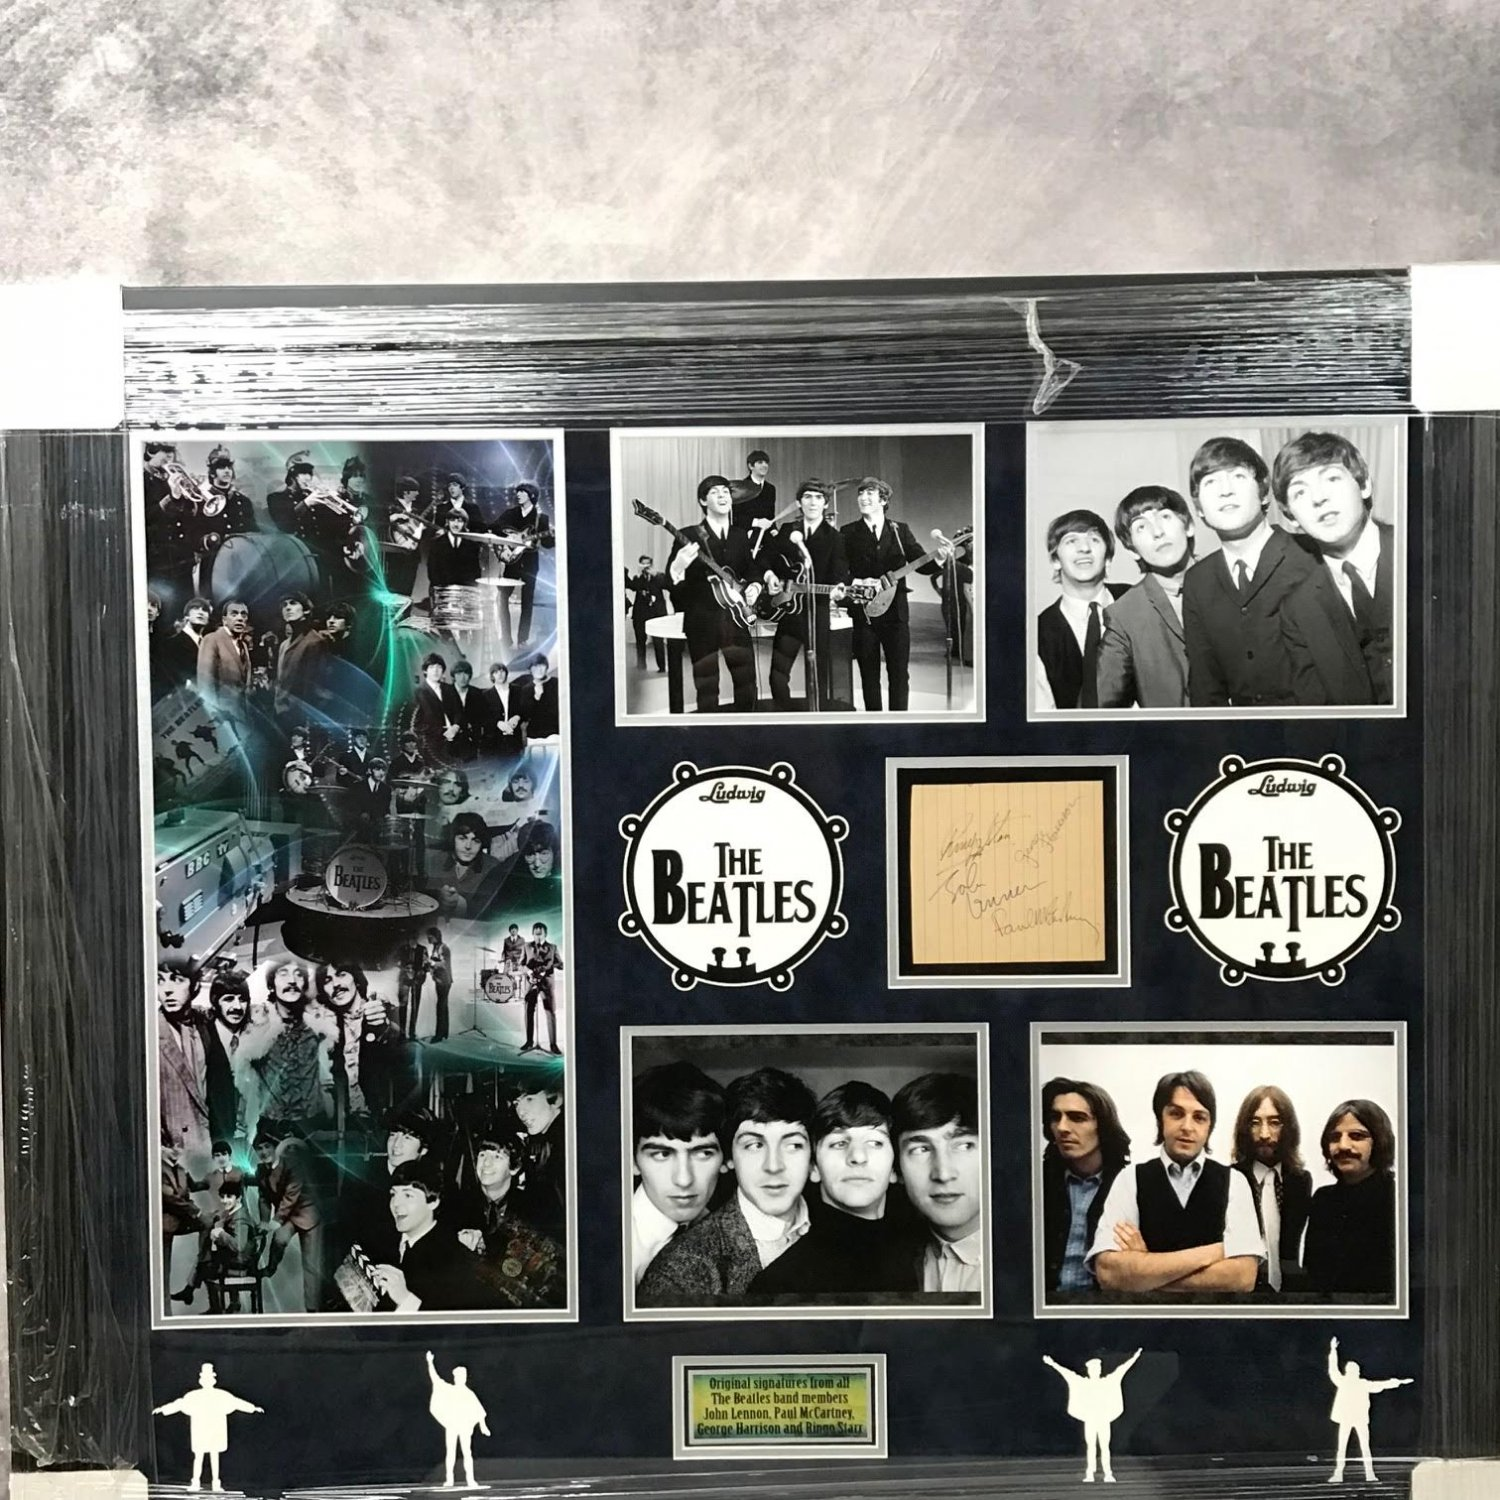 The Beatles Band Autographed 5x7 Note w/ Custom Collage Framing